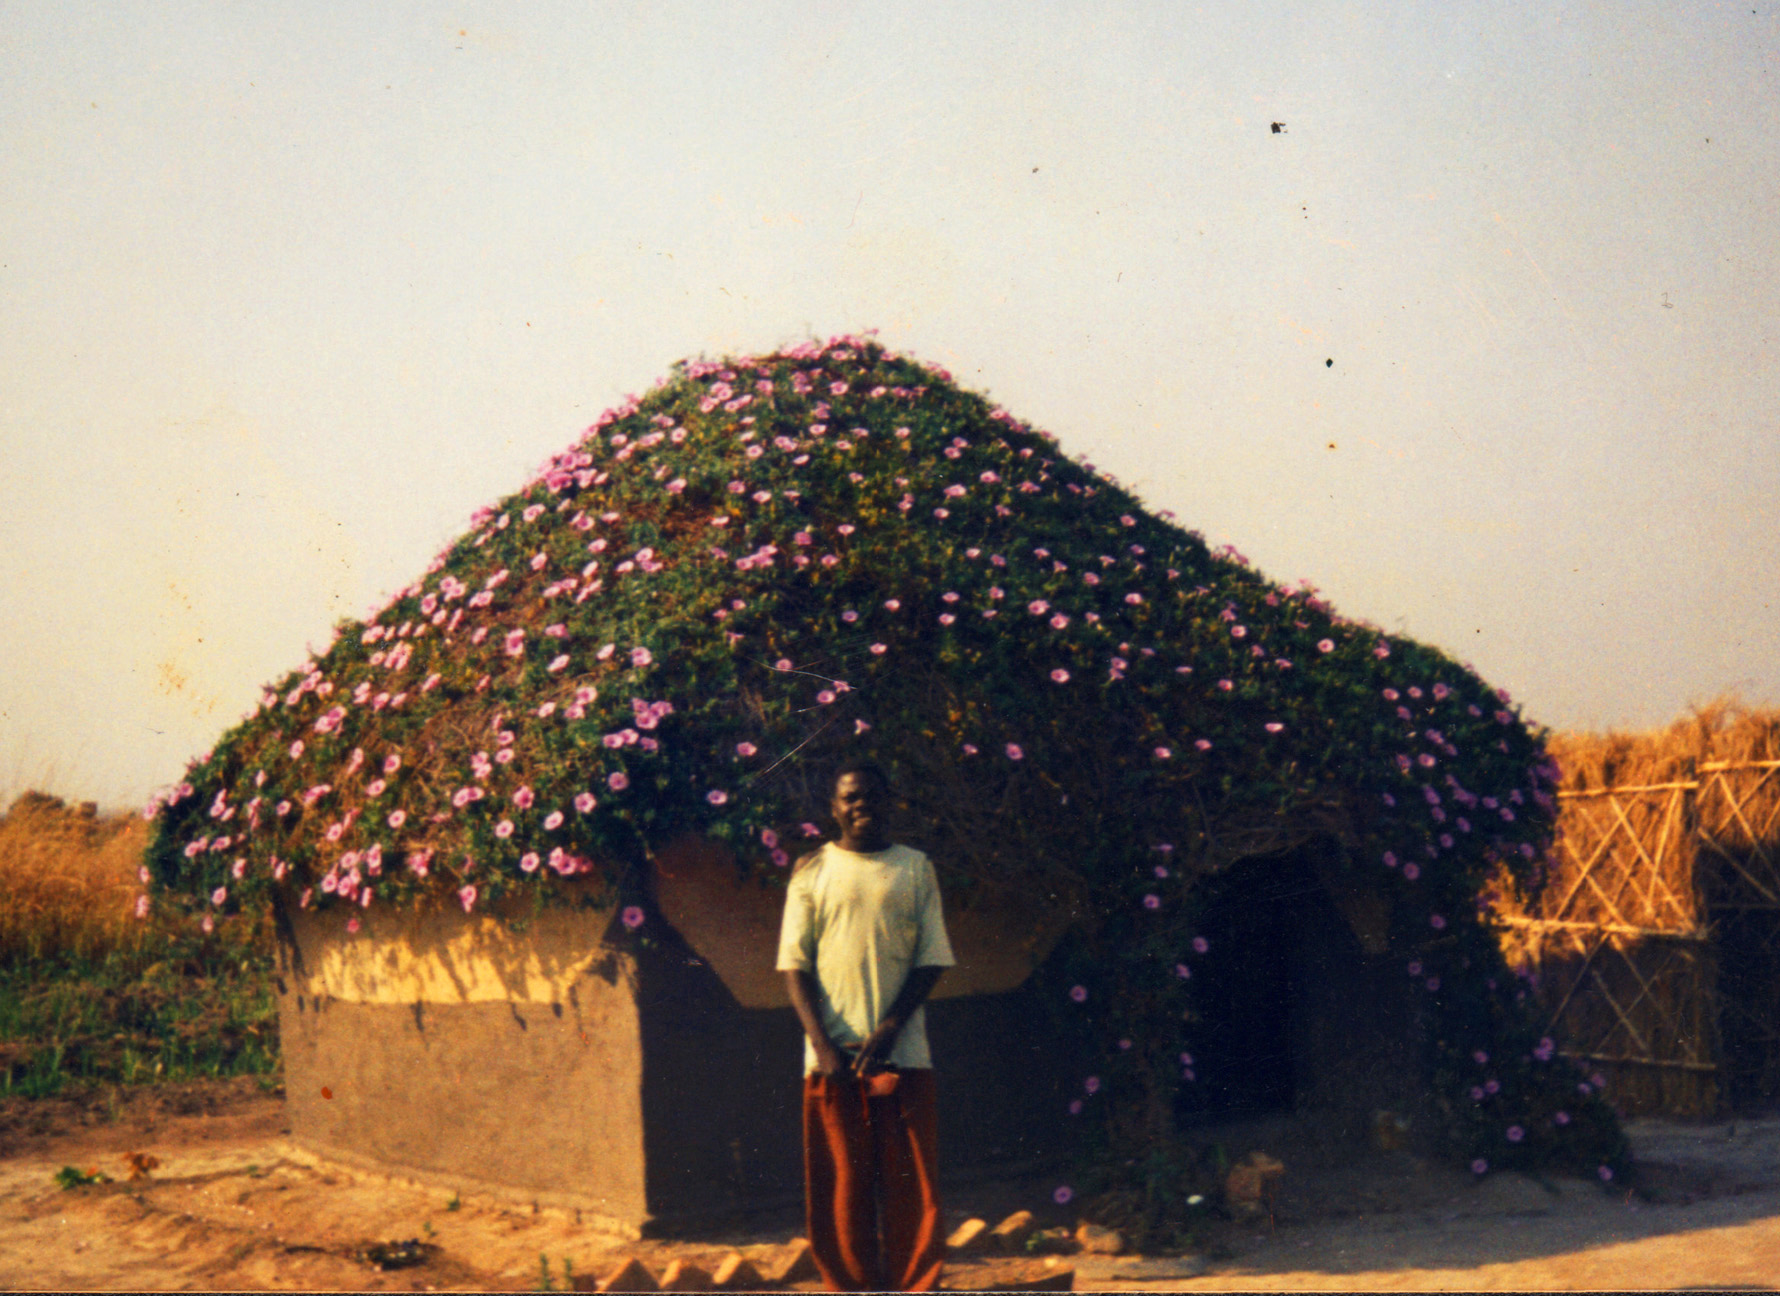 Zambia Man standing in front of his home wit a roof covered with flowering plant